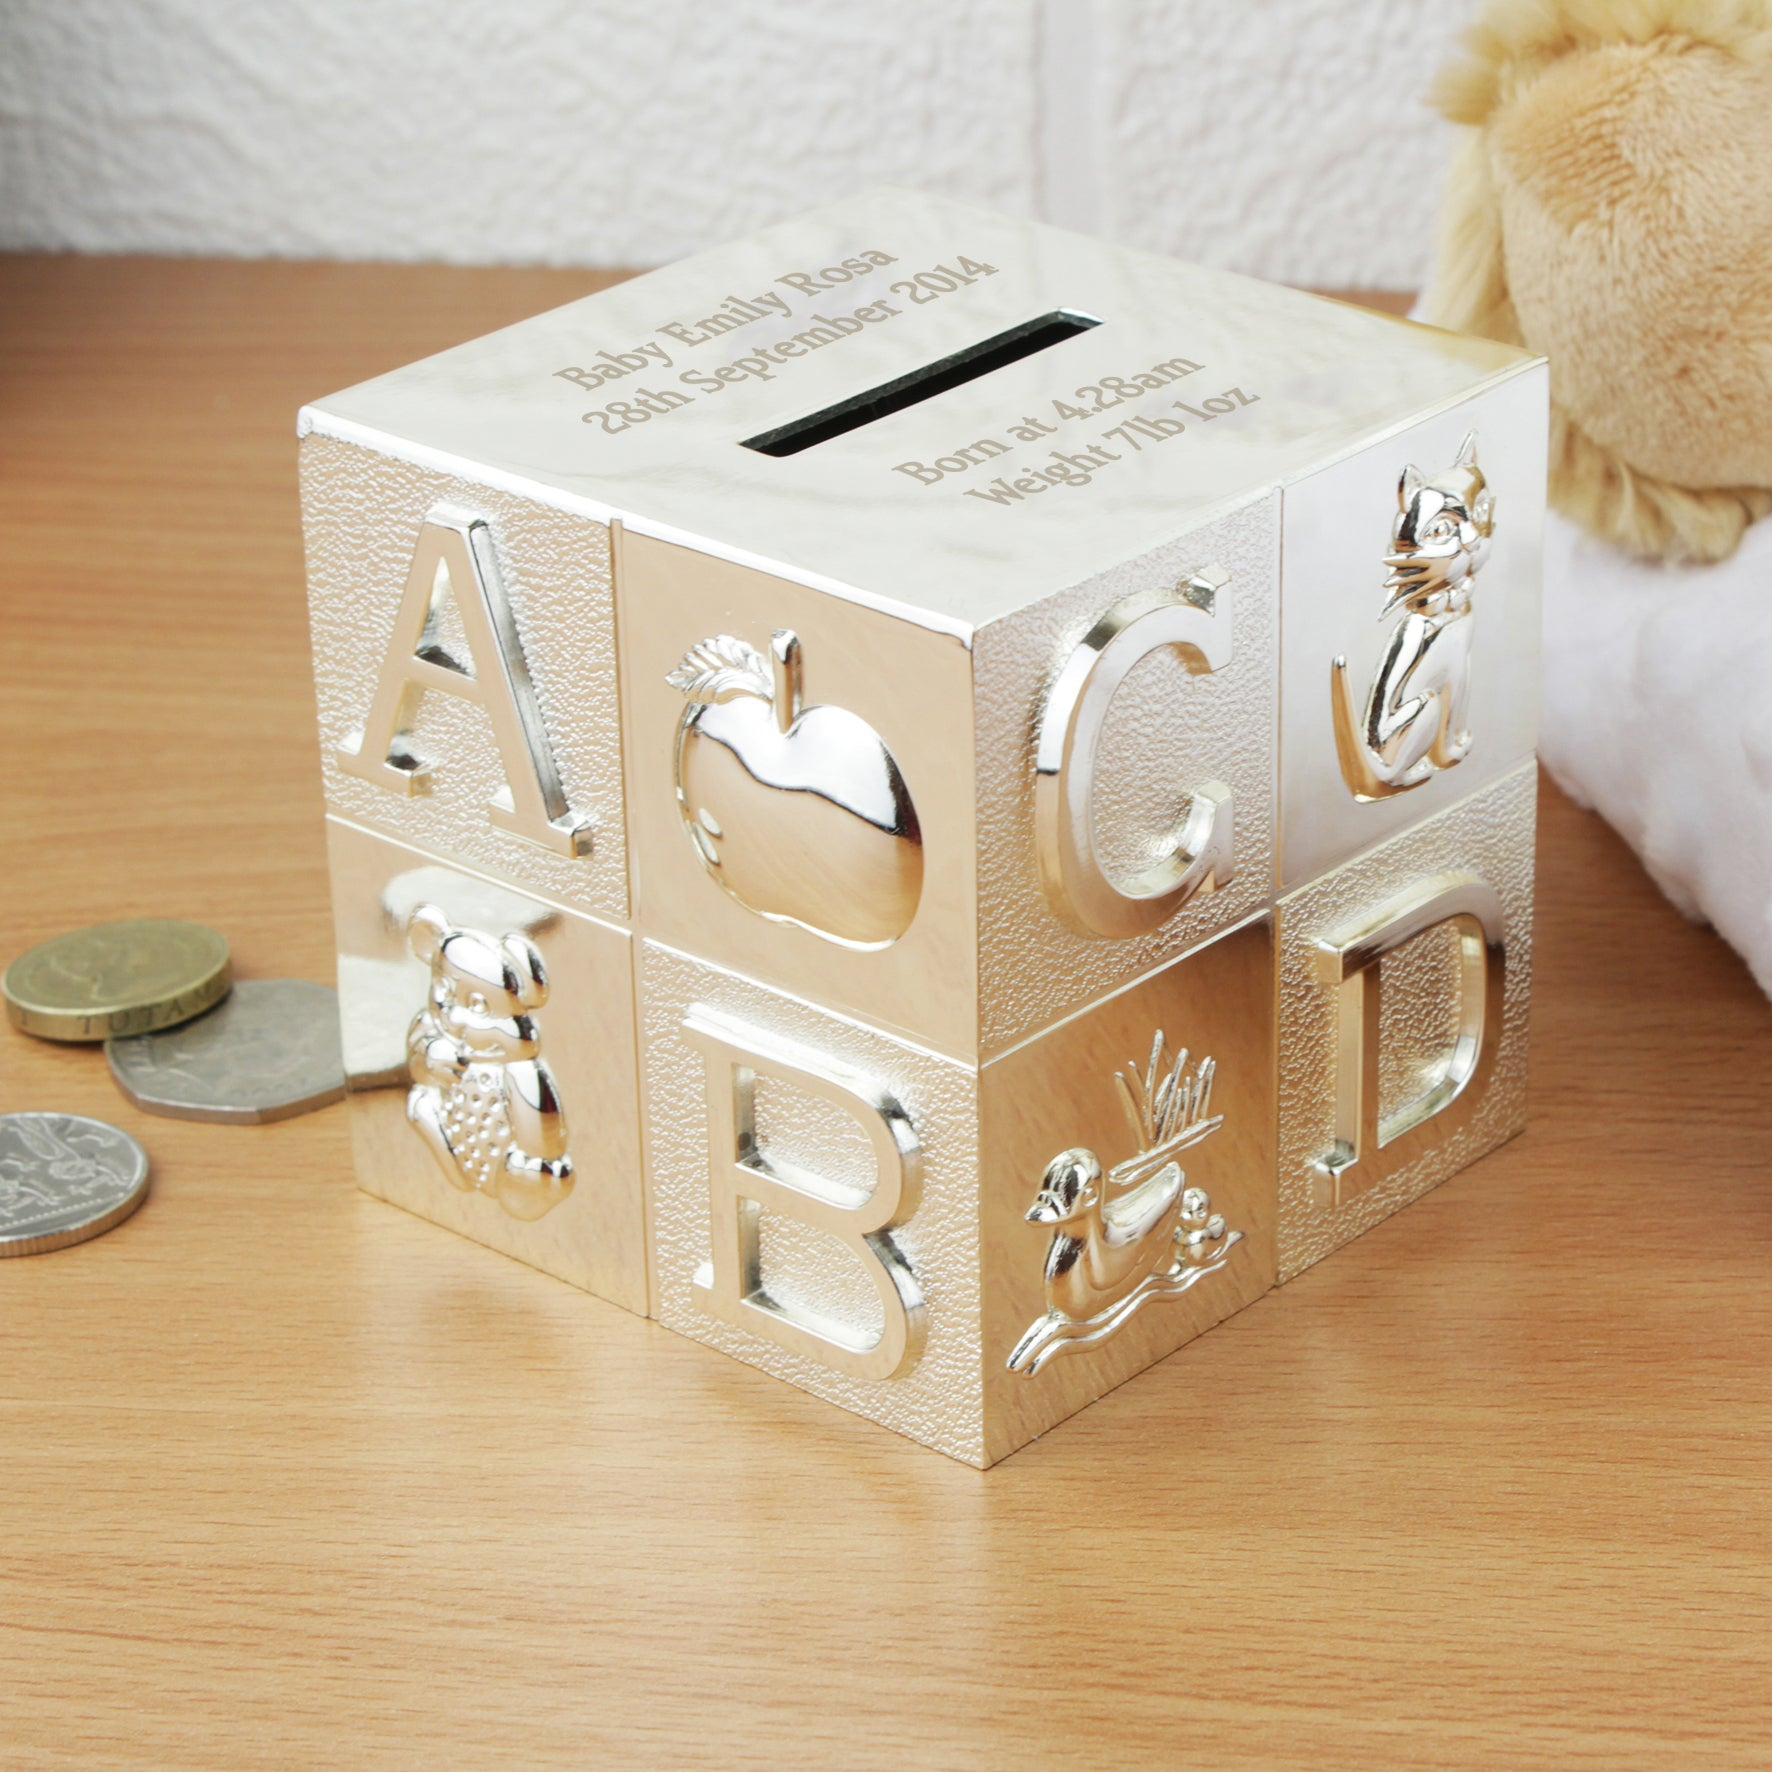 A silver-plated engraved square money box. The money box has an ABCD design on the four sides and the top of the money box has the money slot in it. The money box can be engraved with two lines of text above the money slot and two lines of text below the money slot. This moneybox measures 7.7cm by 7.7cm by 7.7cm.